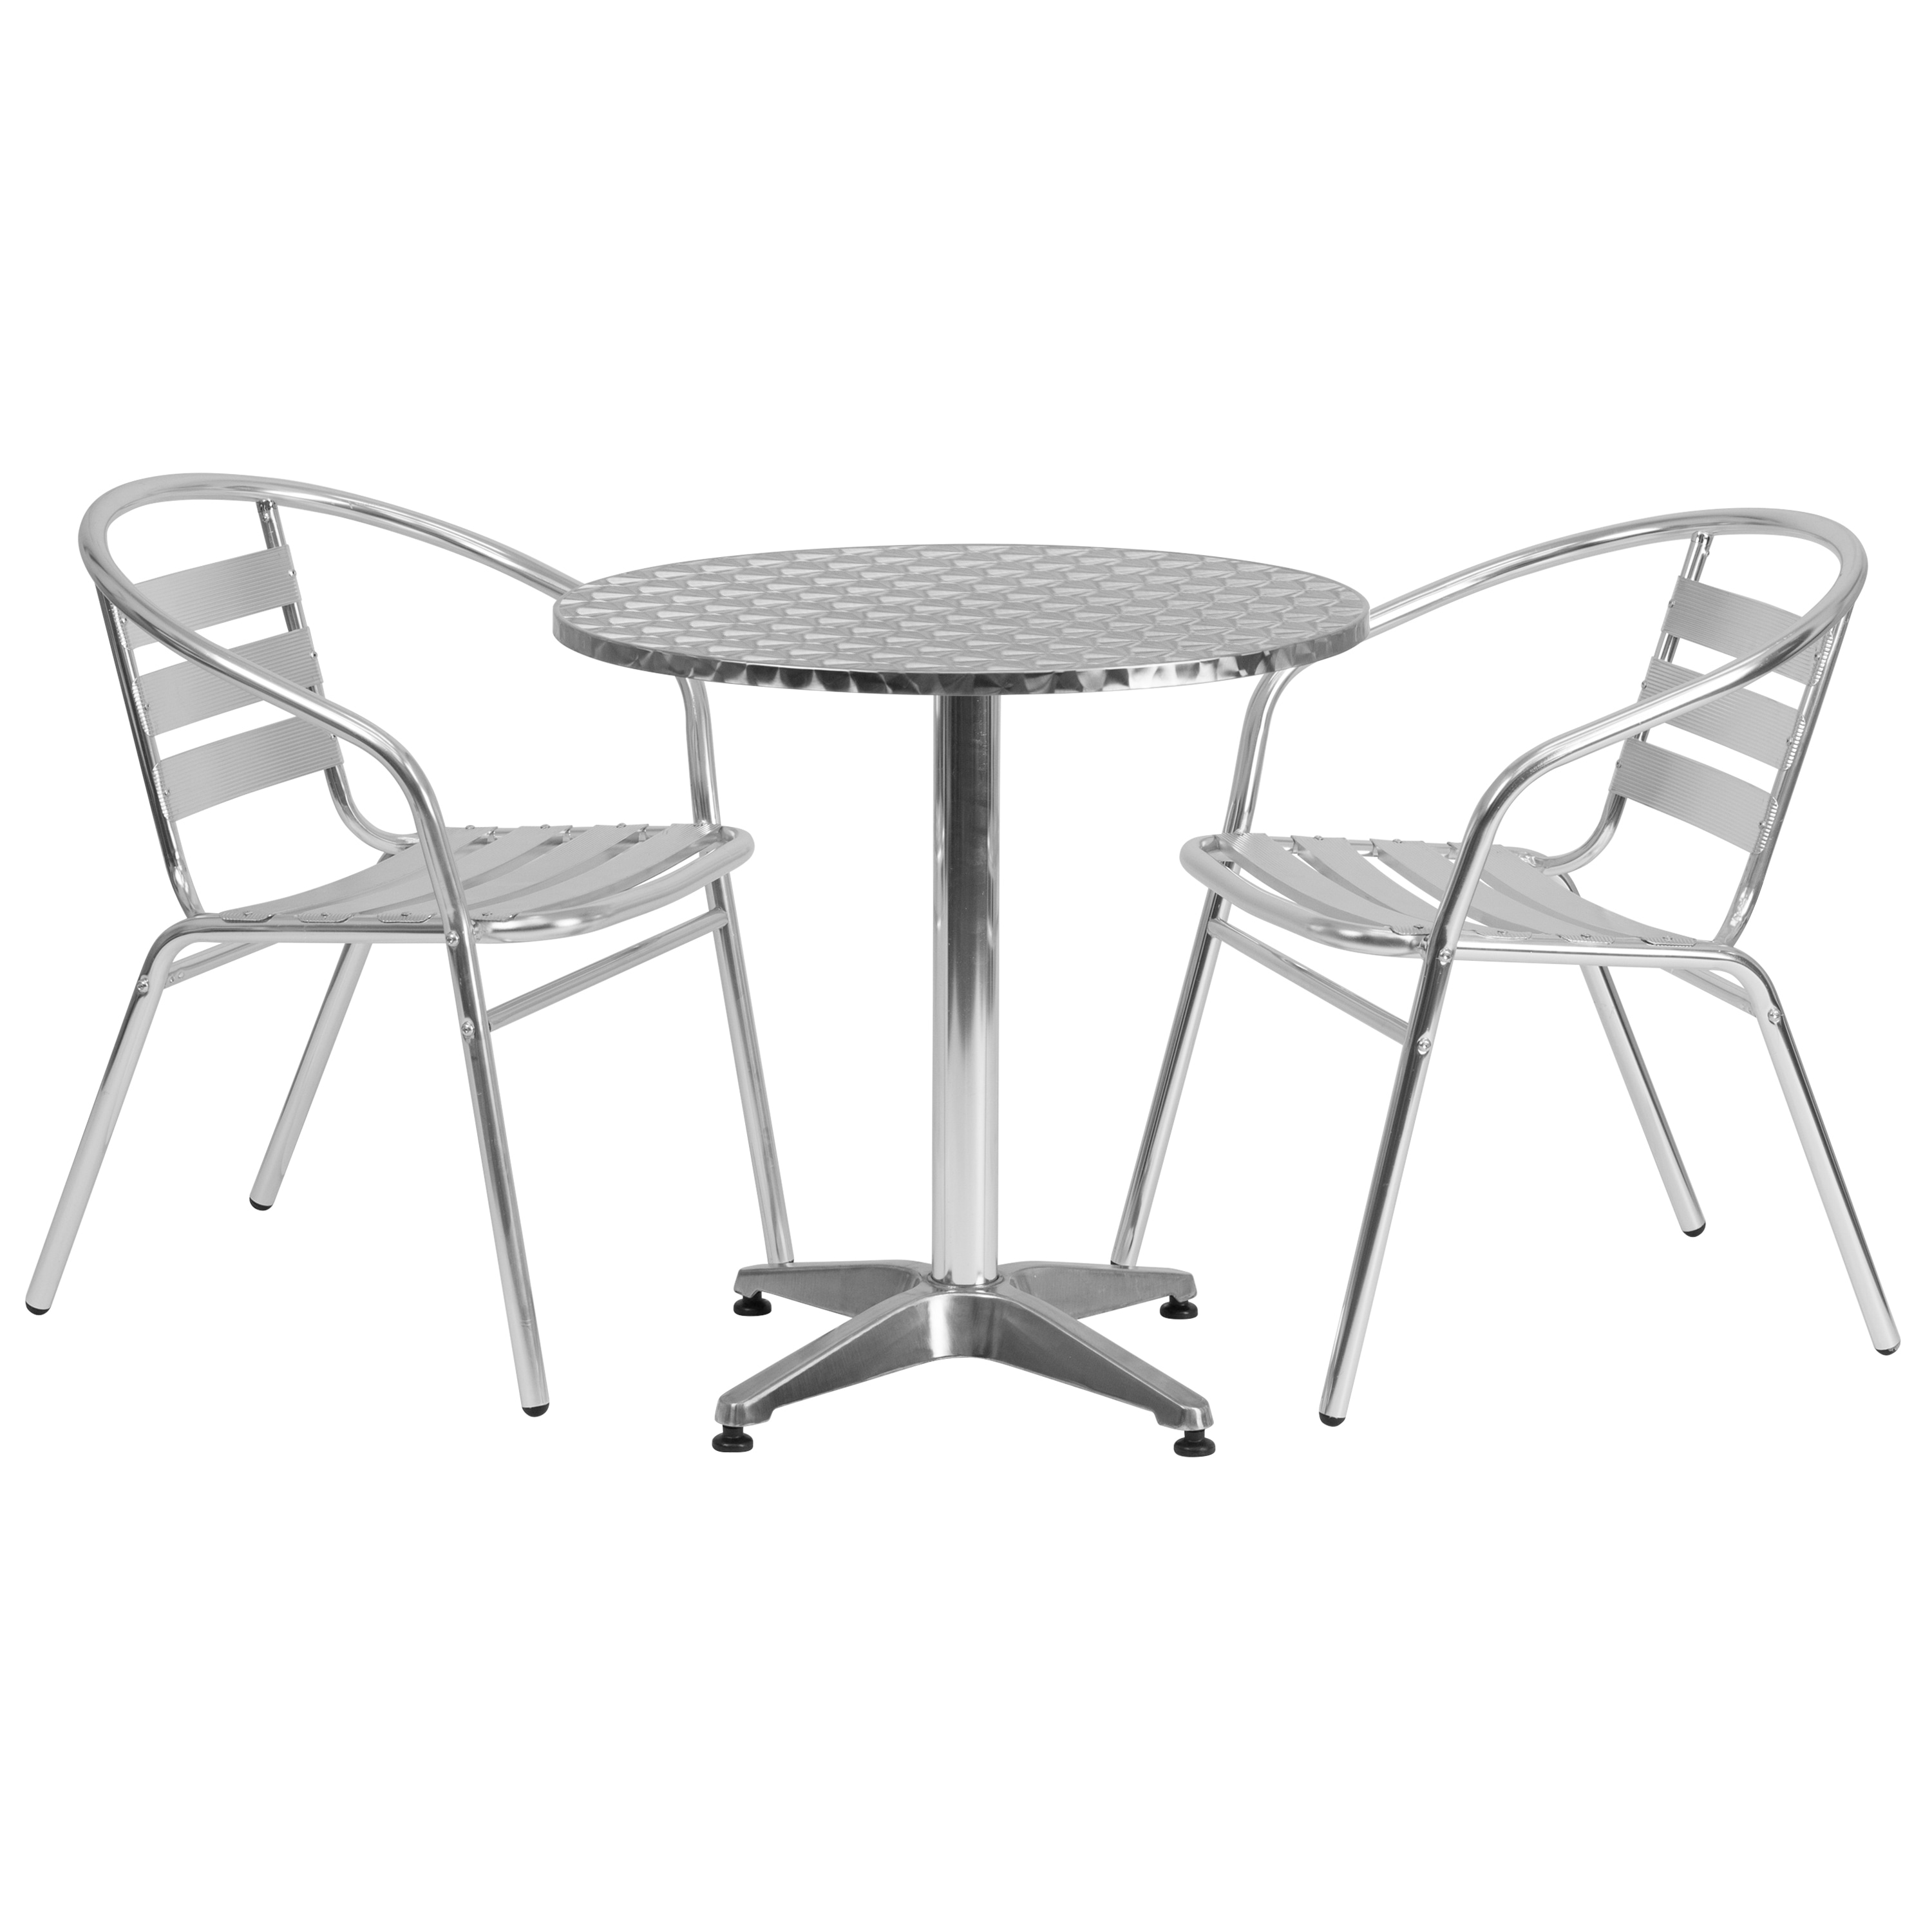 Flash Furniture 27.5-foot Round Aluminum Indoor/ Outdoor Table with 2 Slat Back Chairs